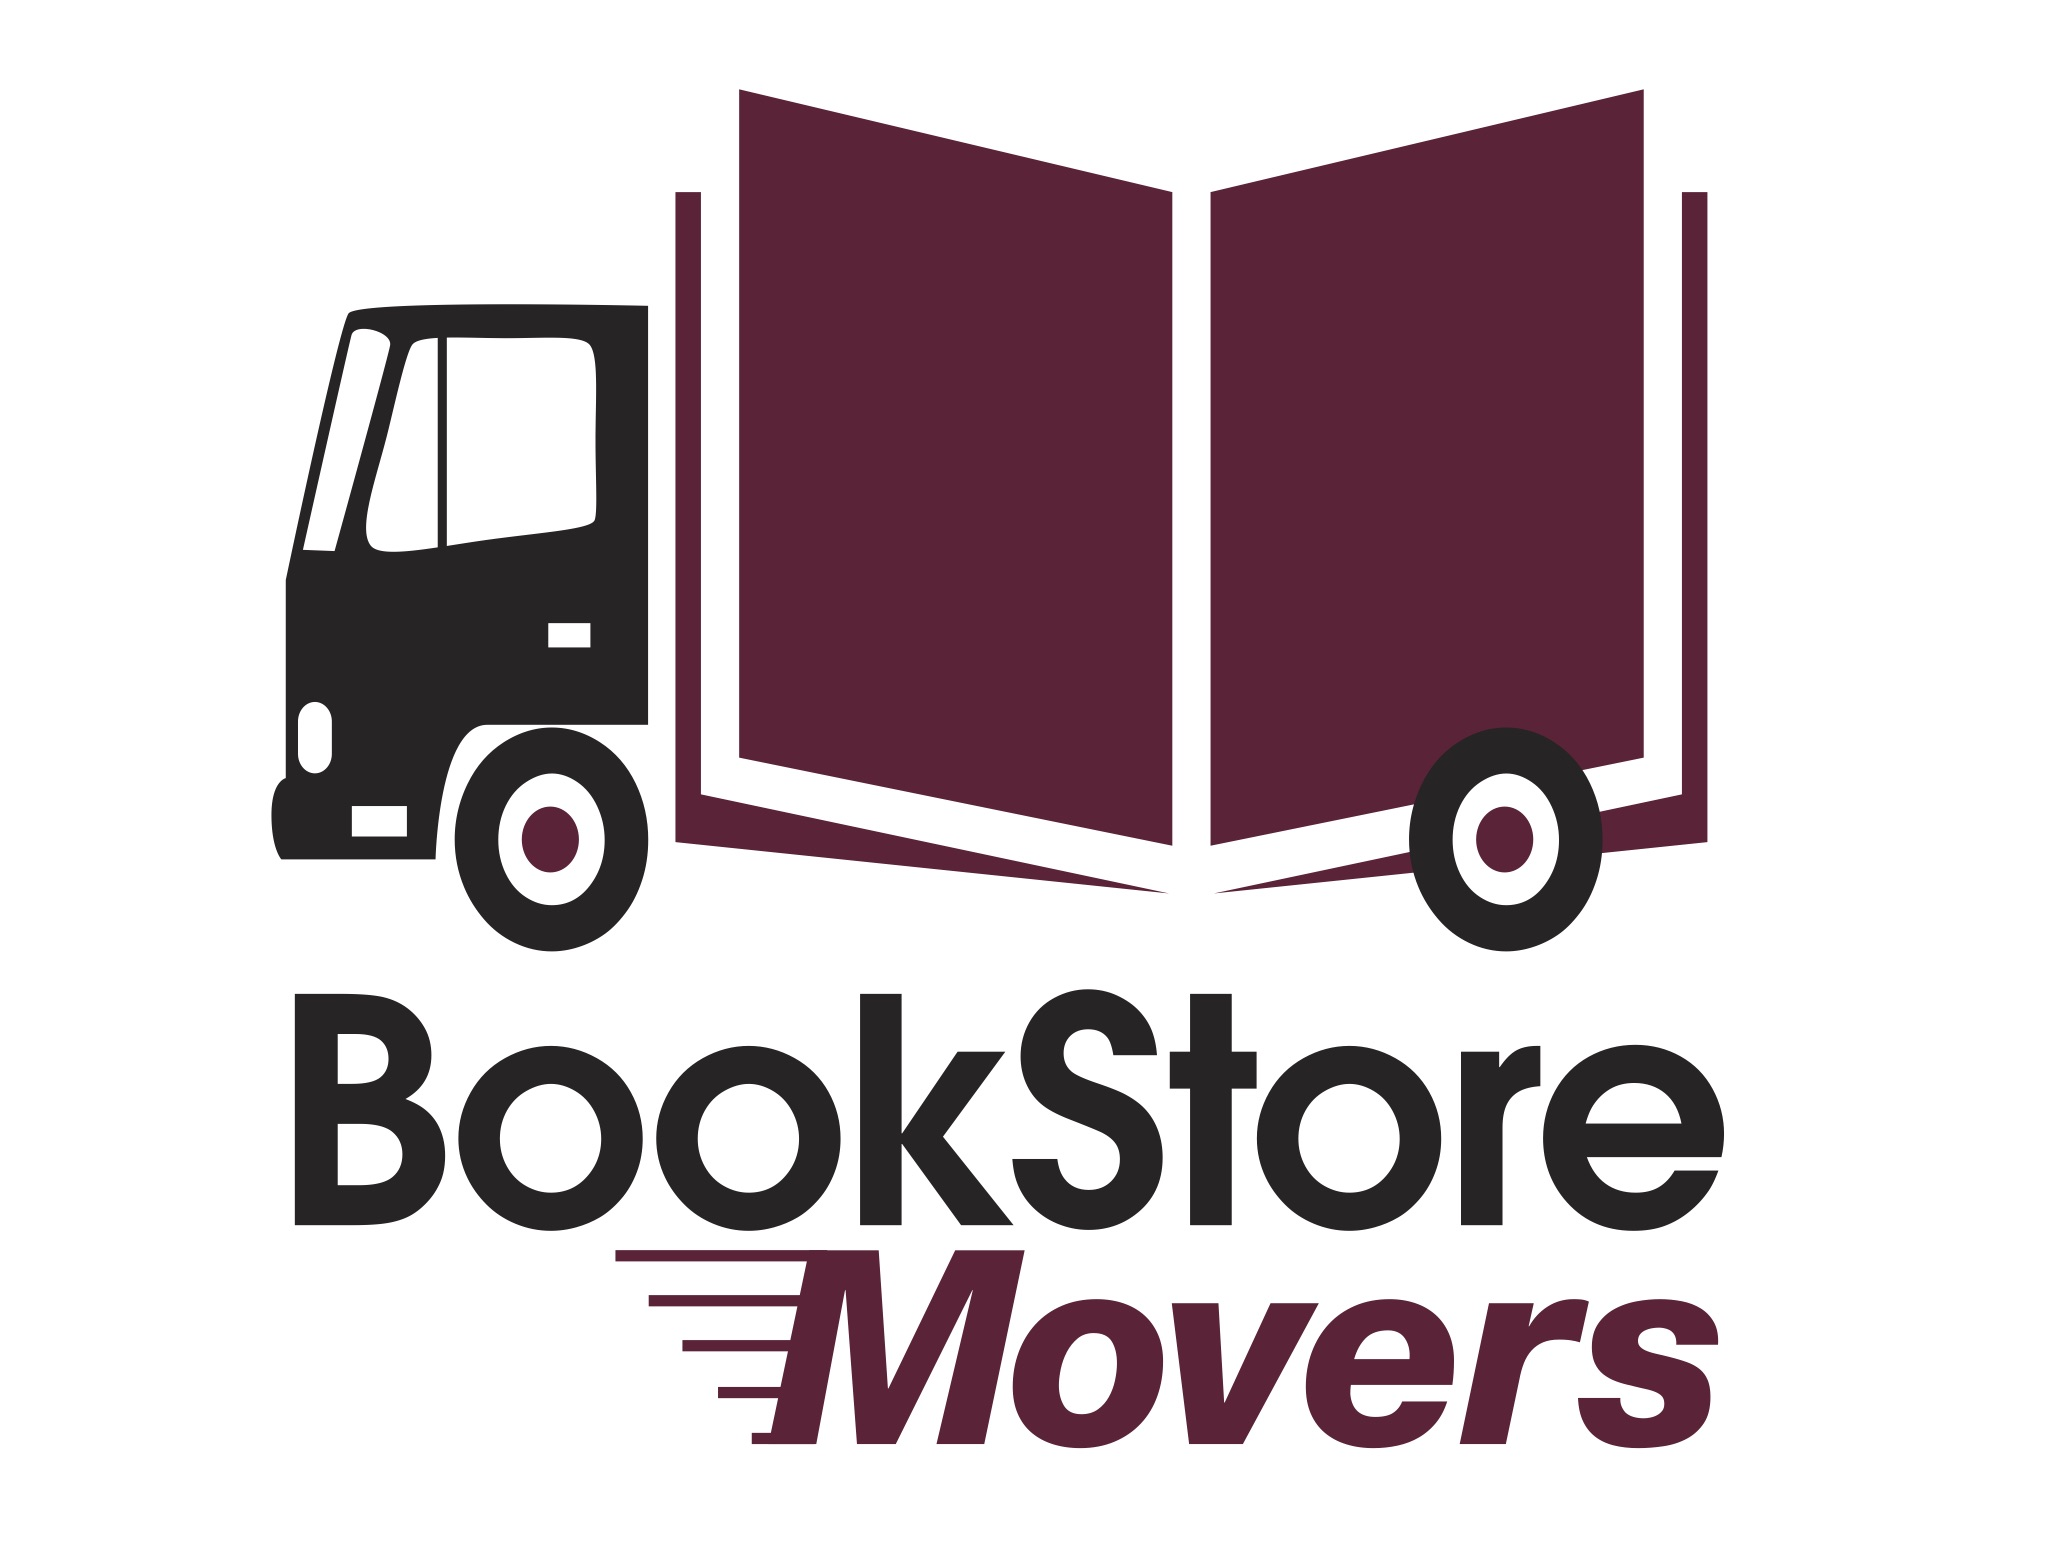 Bookstore Movers